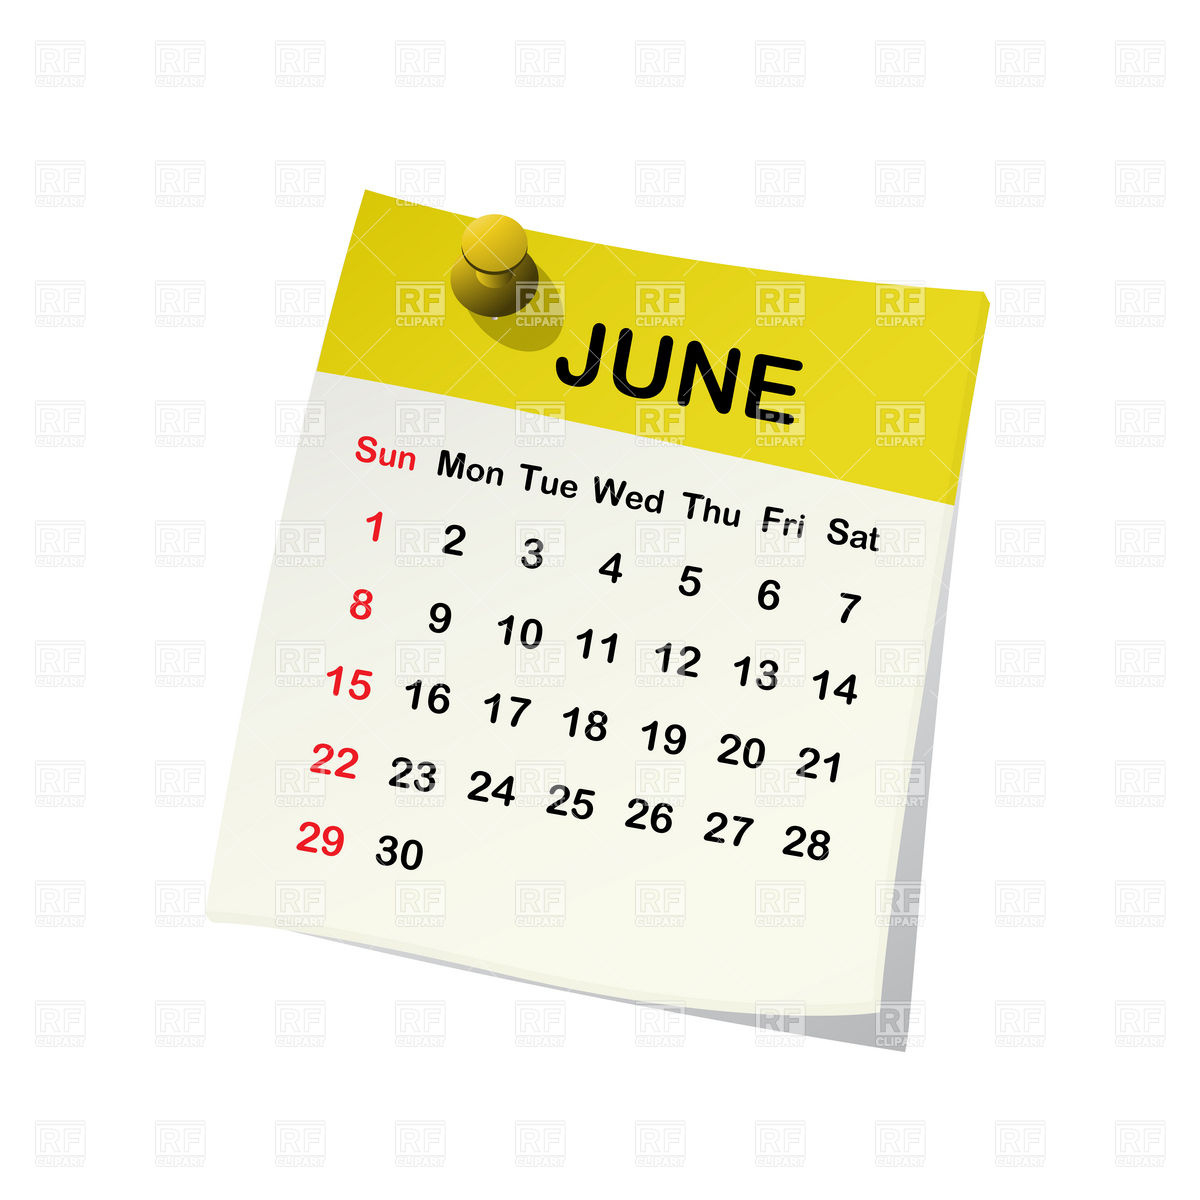 Free june calendar clipart. To download images